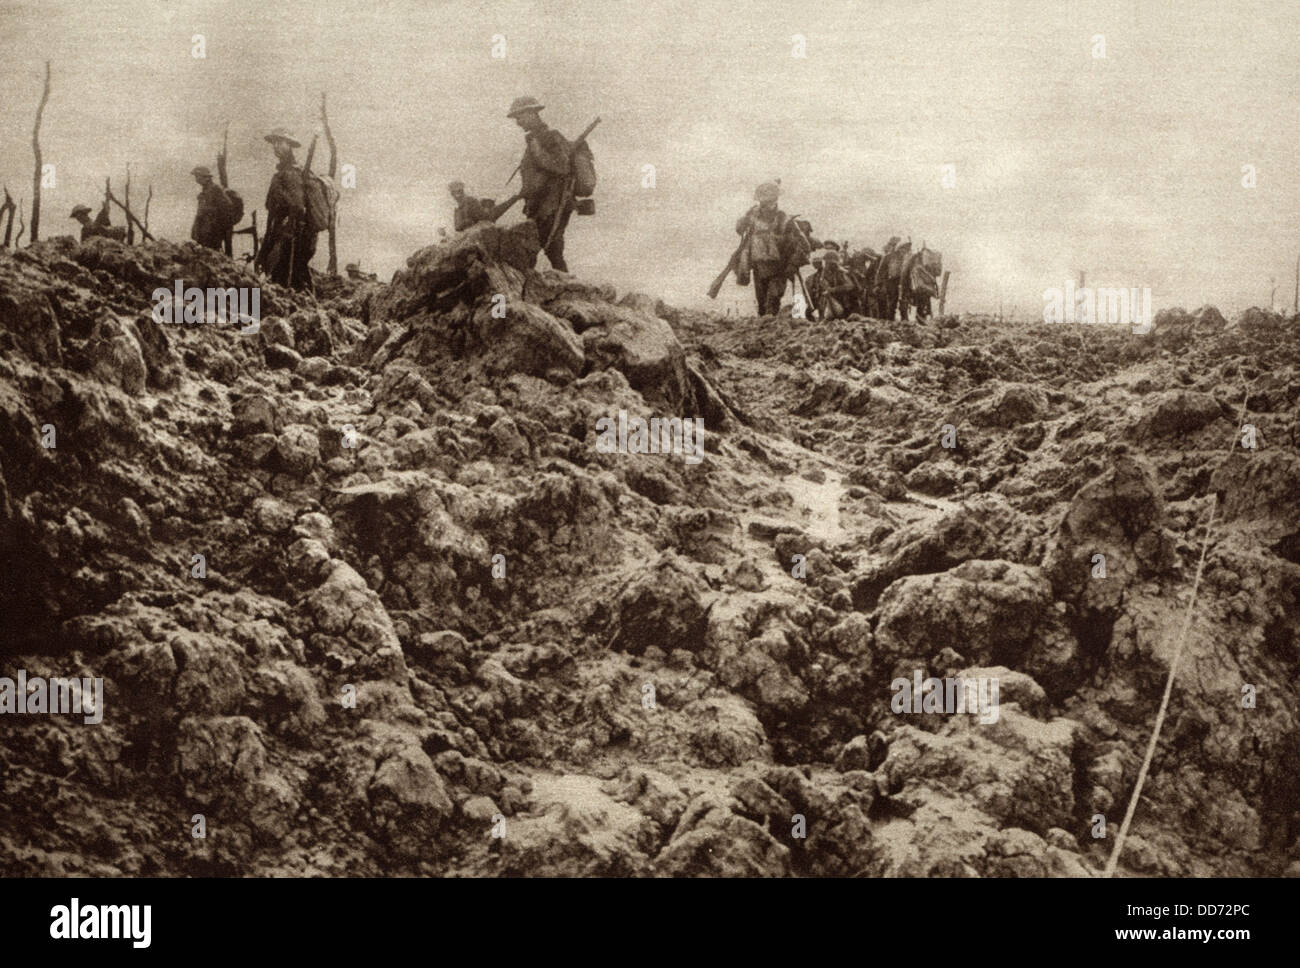 world war 1 western front battleground has been churned up by shell